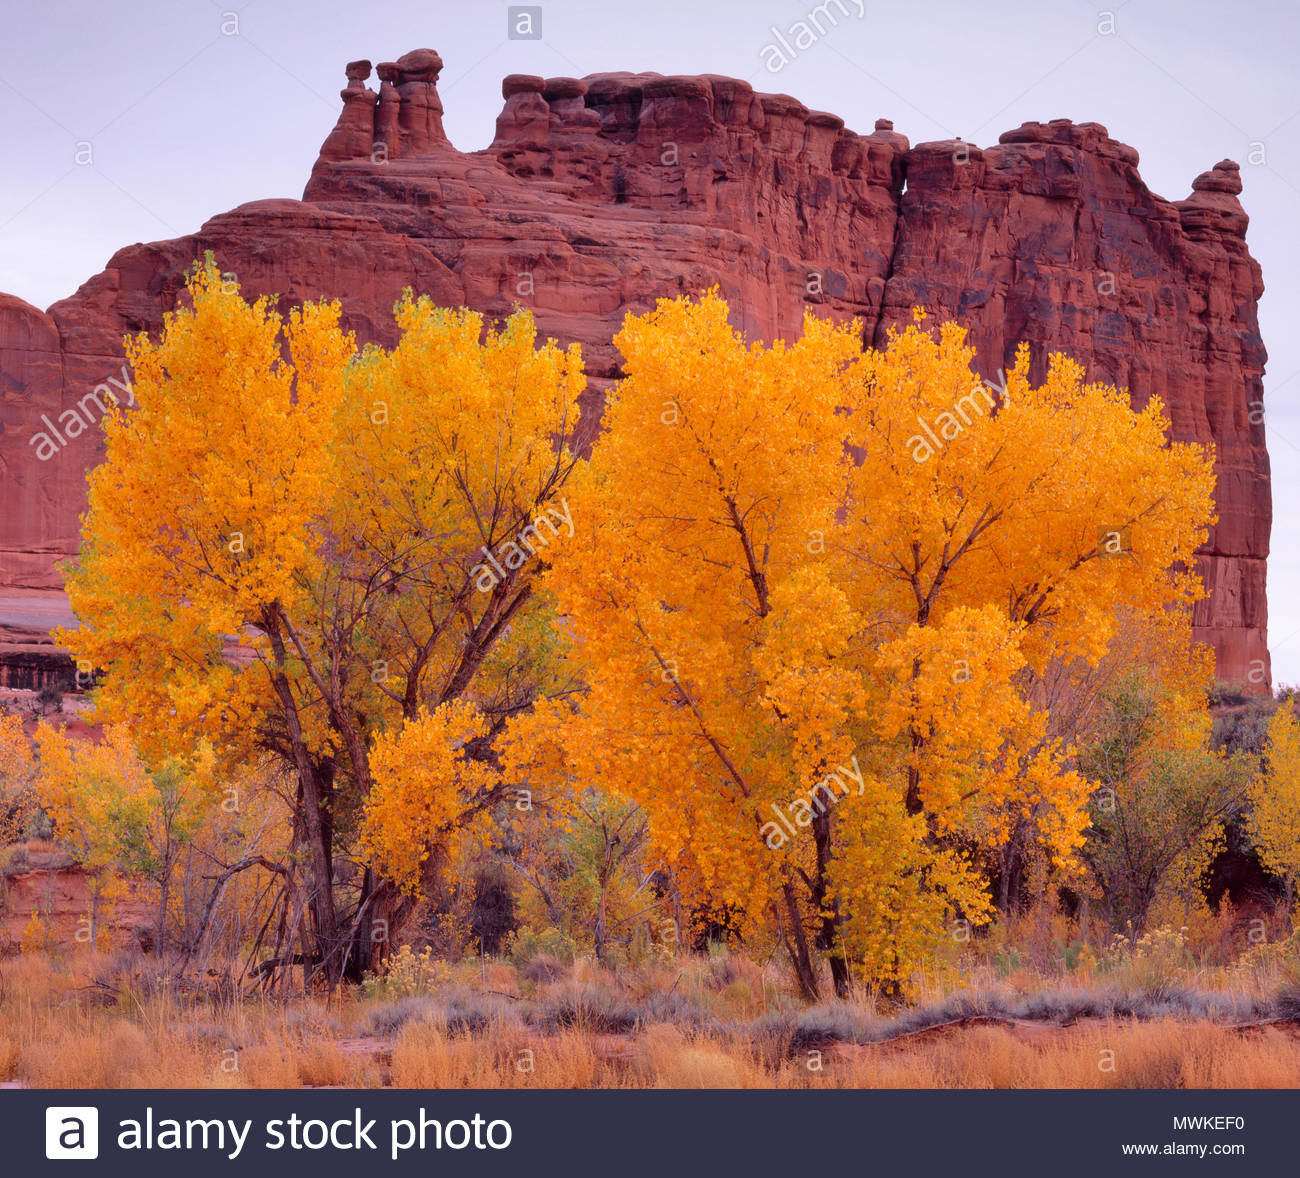 Herbst Cottonwood im Courthouse Wash, Arches National Park, Utah Stockbild